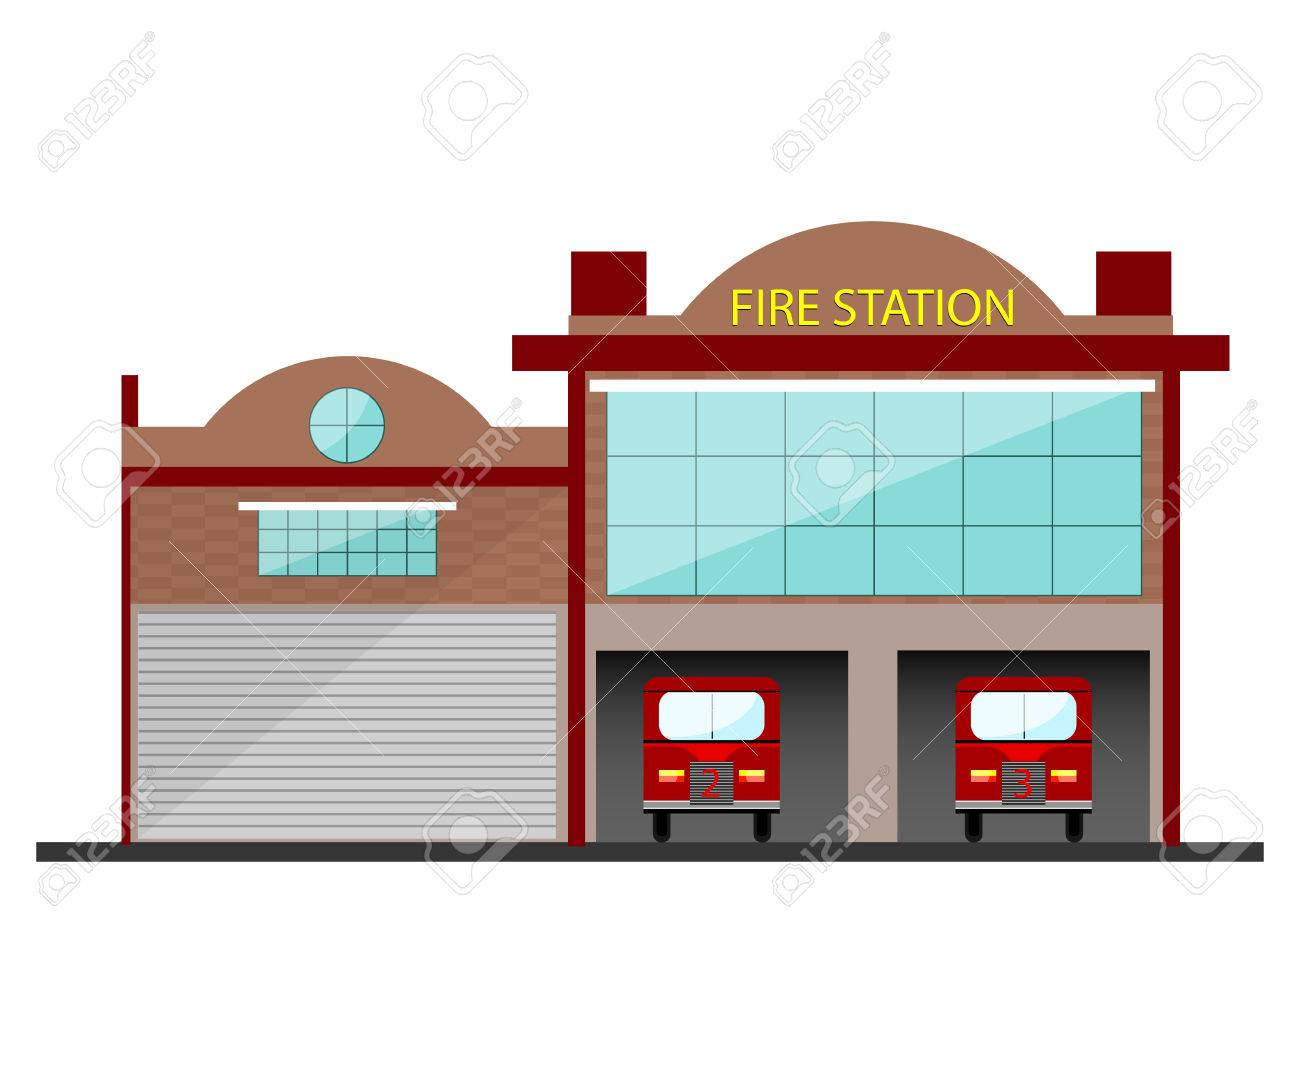 hight resolution of fire station building in flat design isolated object on white background stock vector